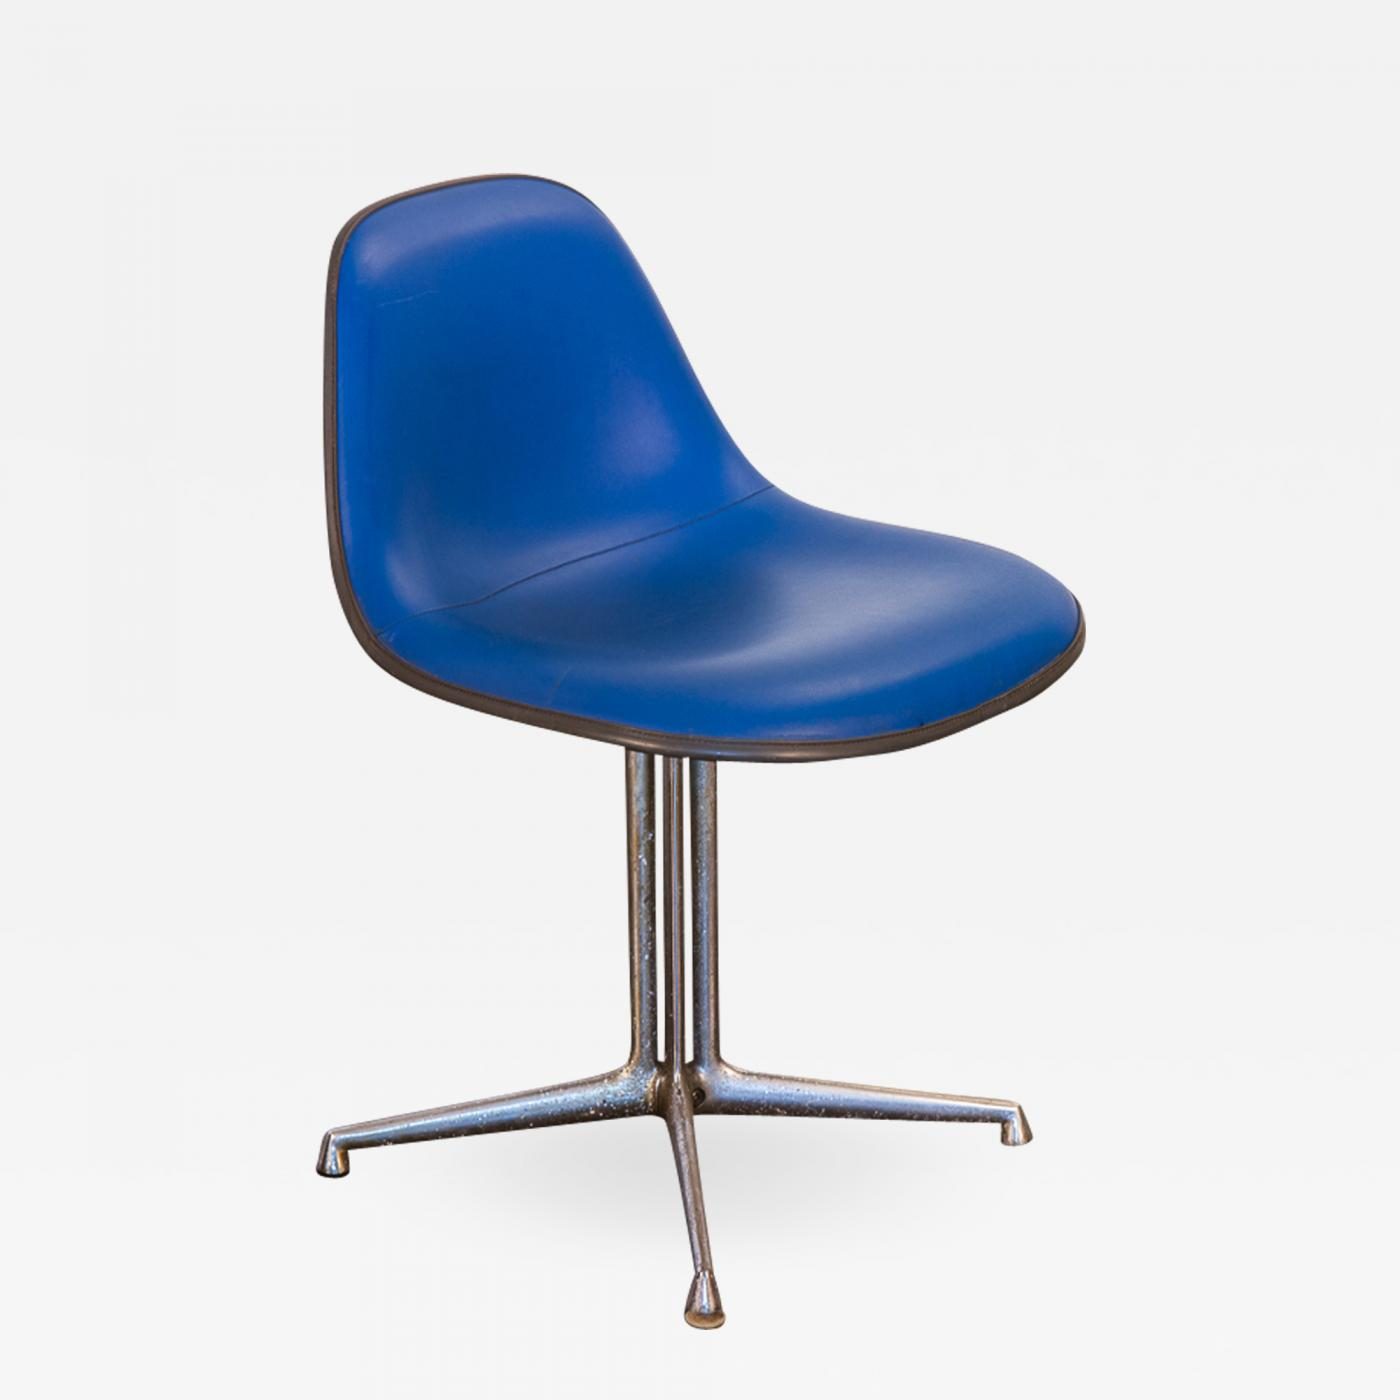 Eanes Chair Charles And Ray Eames Blue La Fonda Eames Chair